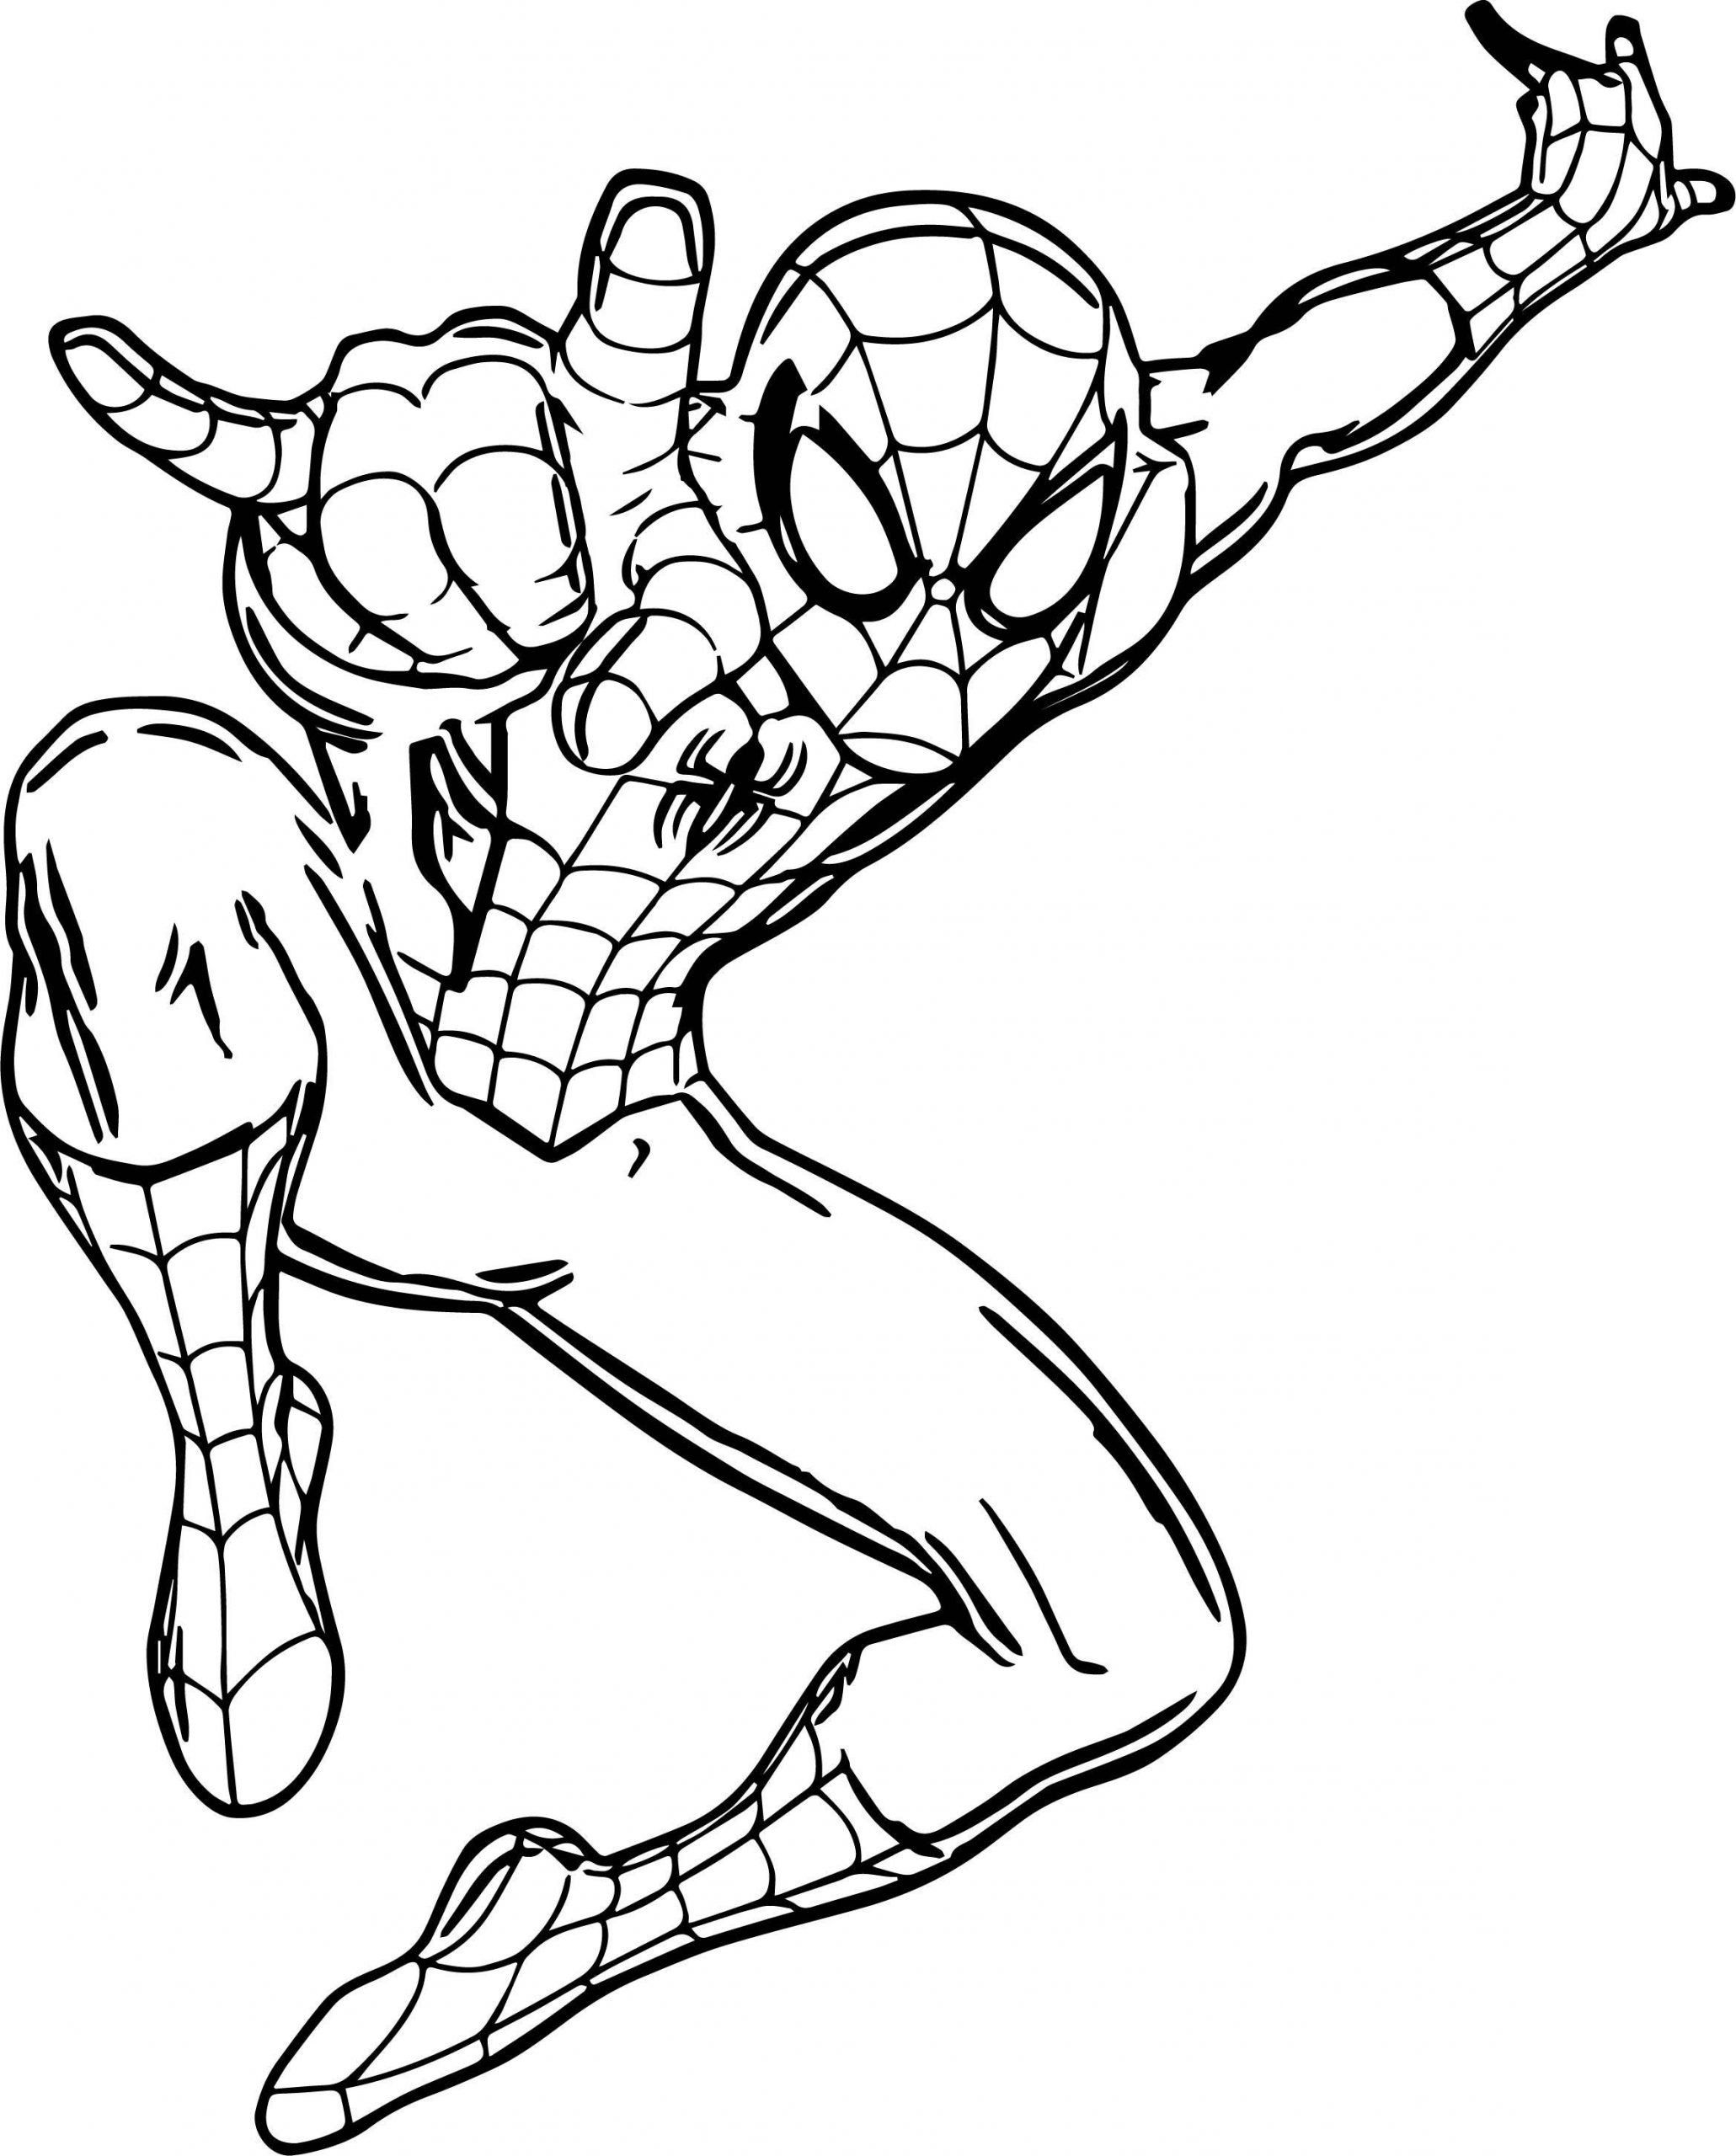 Coloring Pages For Kids Spiderman Coloring Pages Spiderman Christmas Coloring Pages Cussing In 2020 Spiderman Coloring Avengers Coloring Pages Superhero Coloring Pages